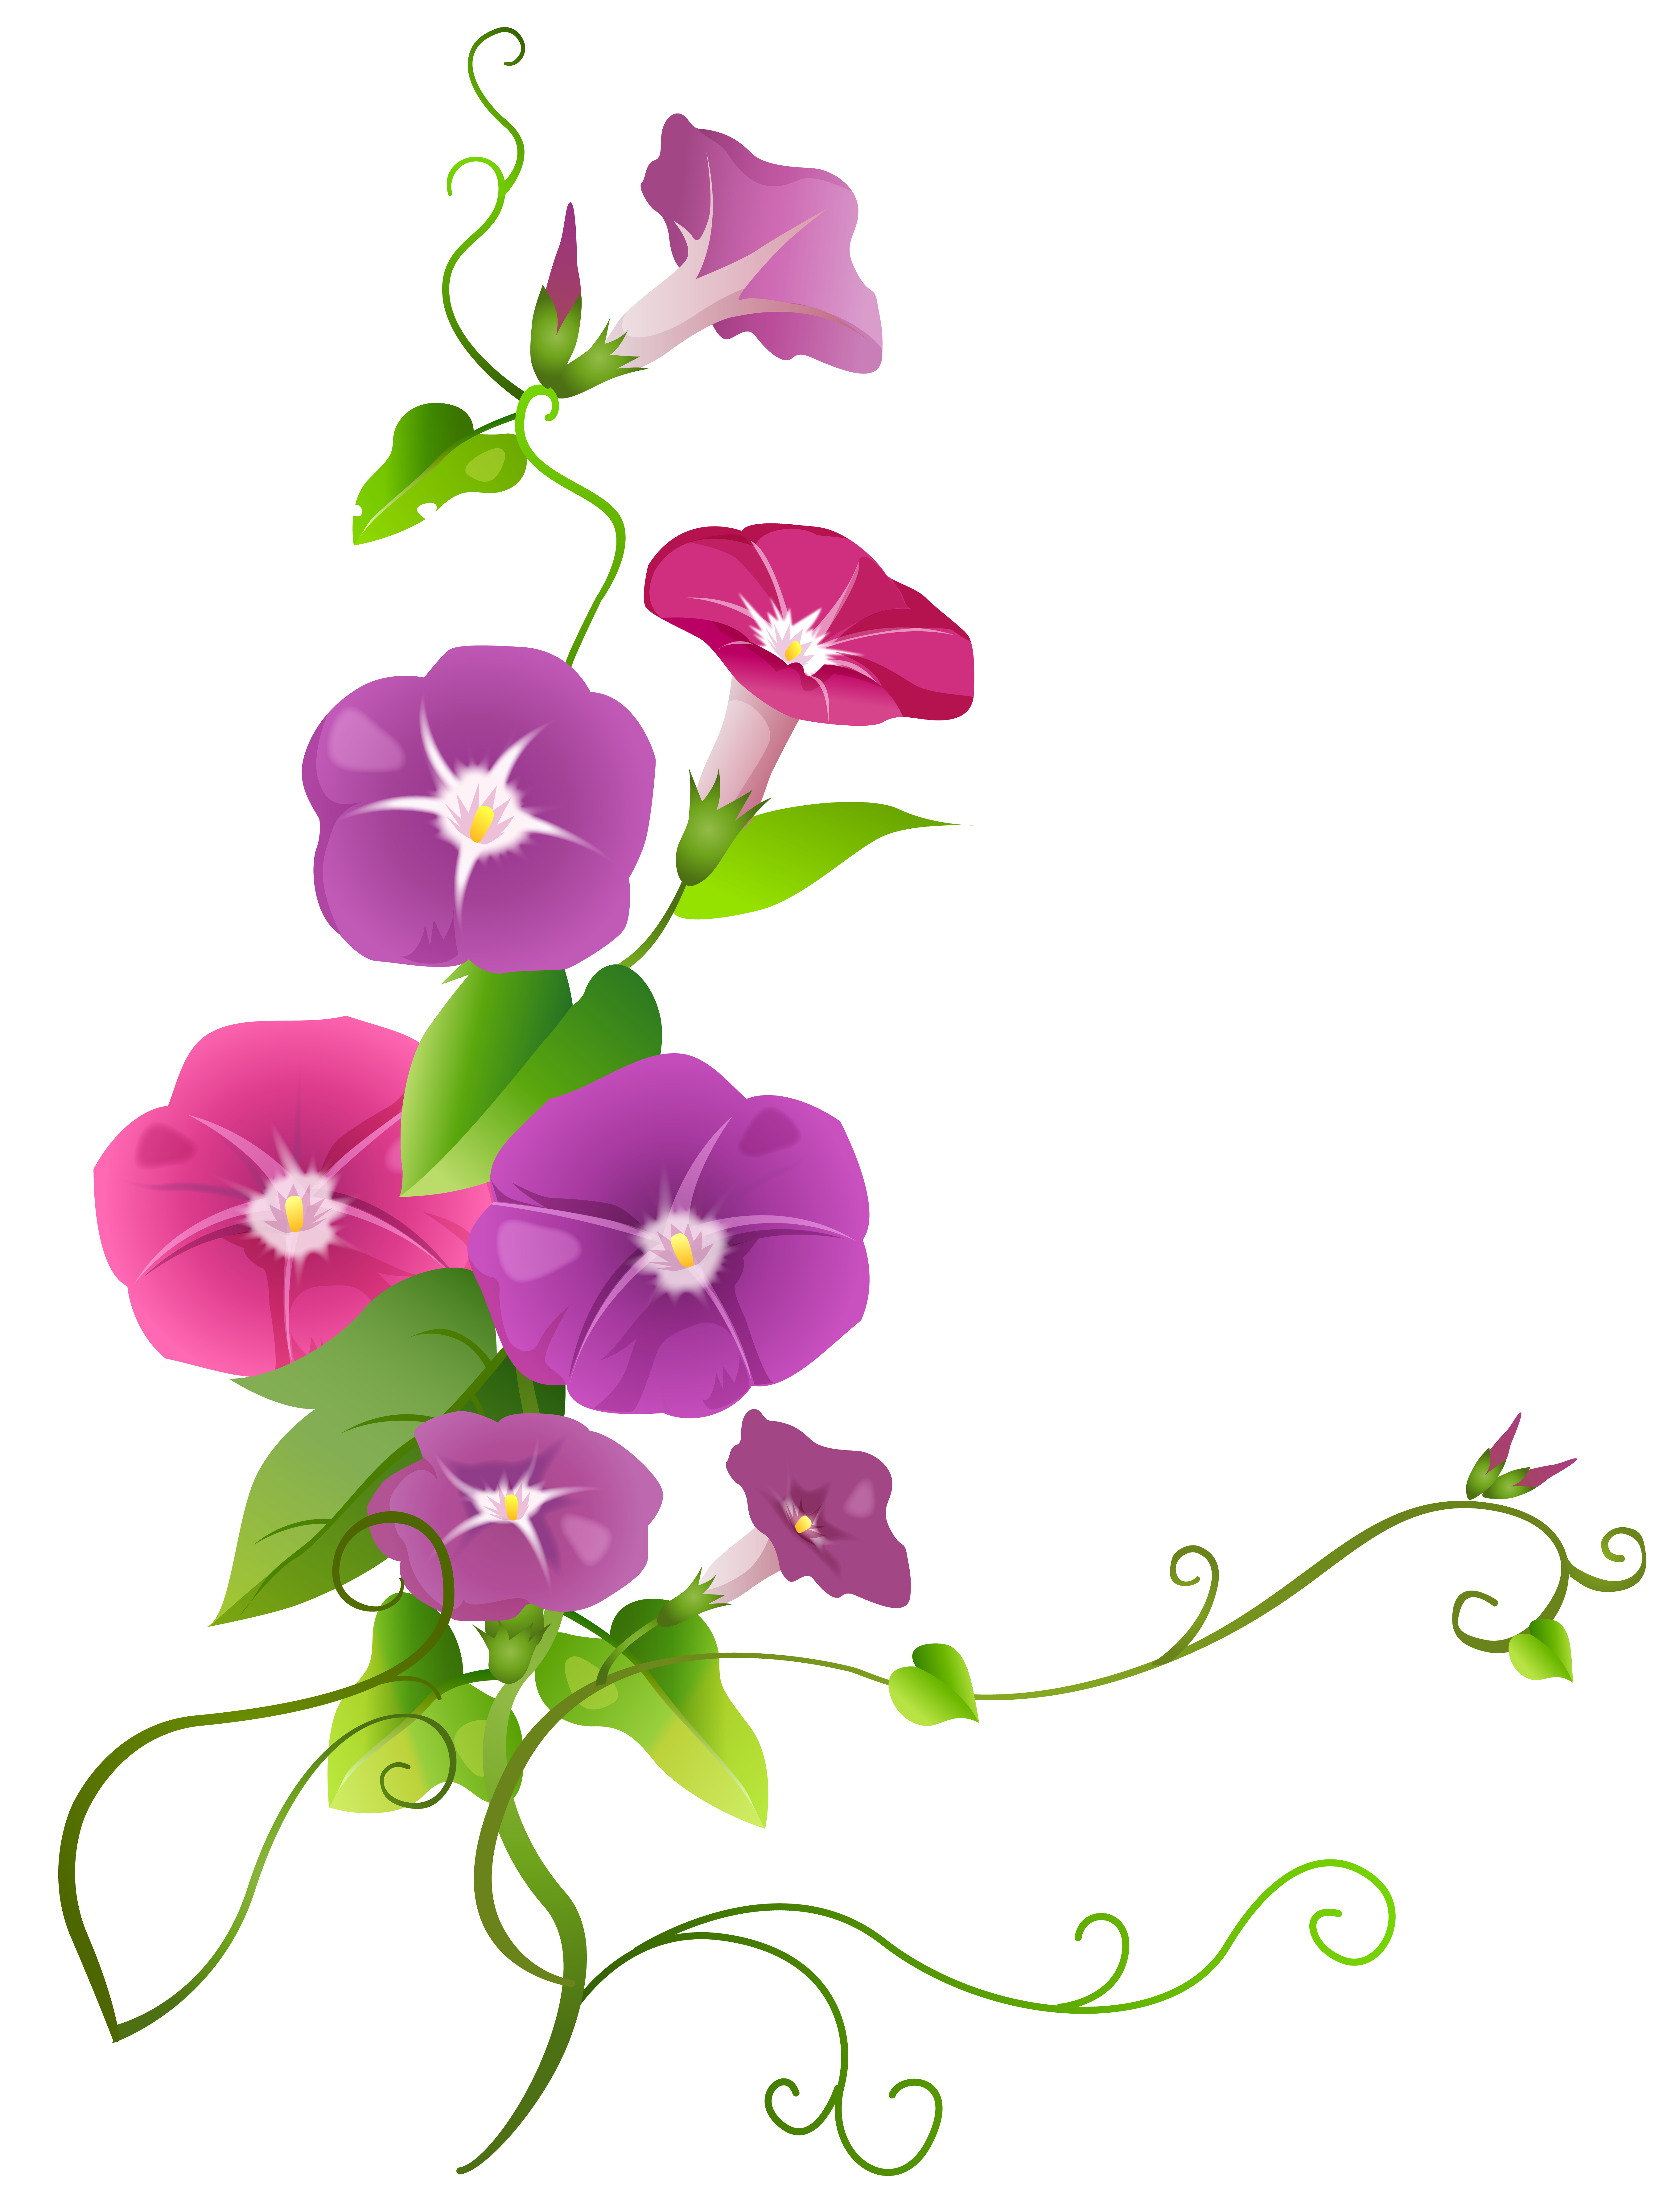 flower art clipart at getdrawings com free for personal use flower rh getdrawings com clip art flower borders and frames clip art flower borders for funeral programs